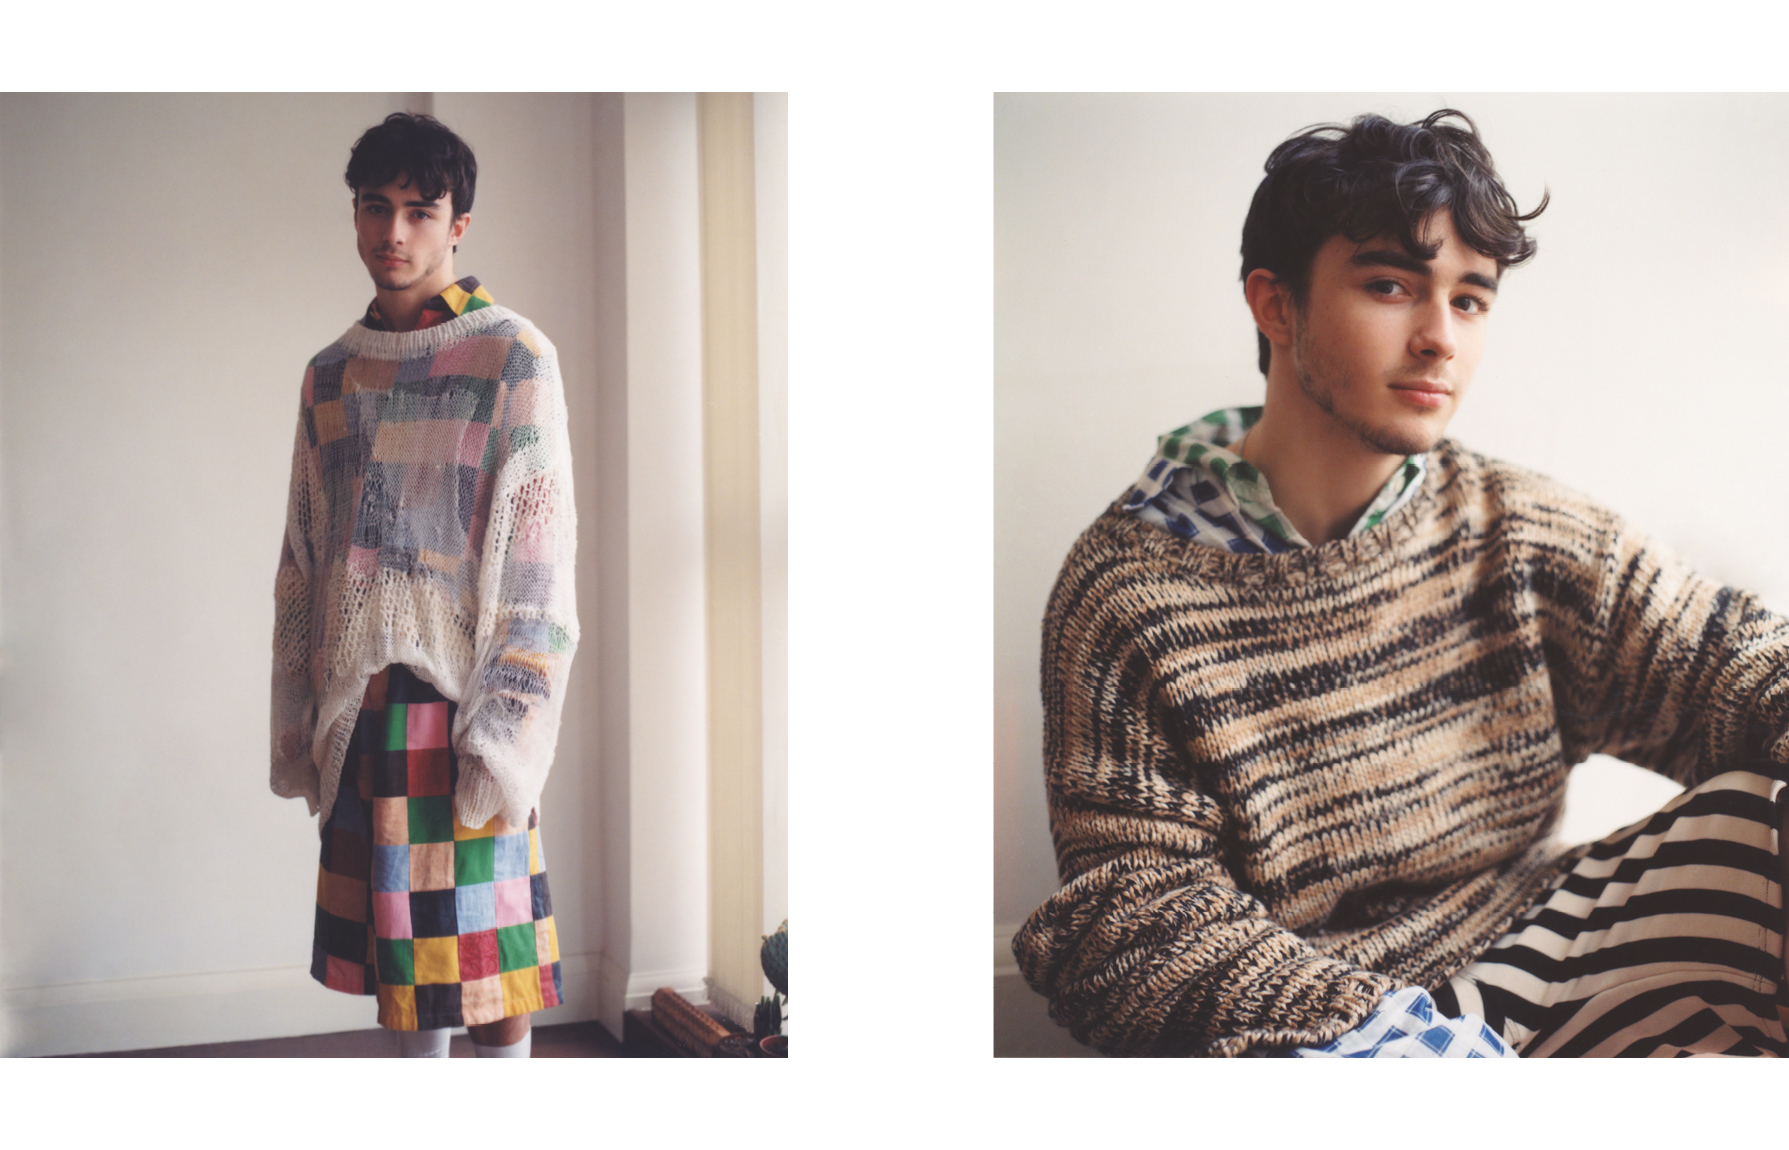 Left: Sweater by Christian Dada. Shirt and shorts by Loewe.Right: Sweater by Joseph. Shirts and shorts by Marni.